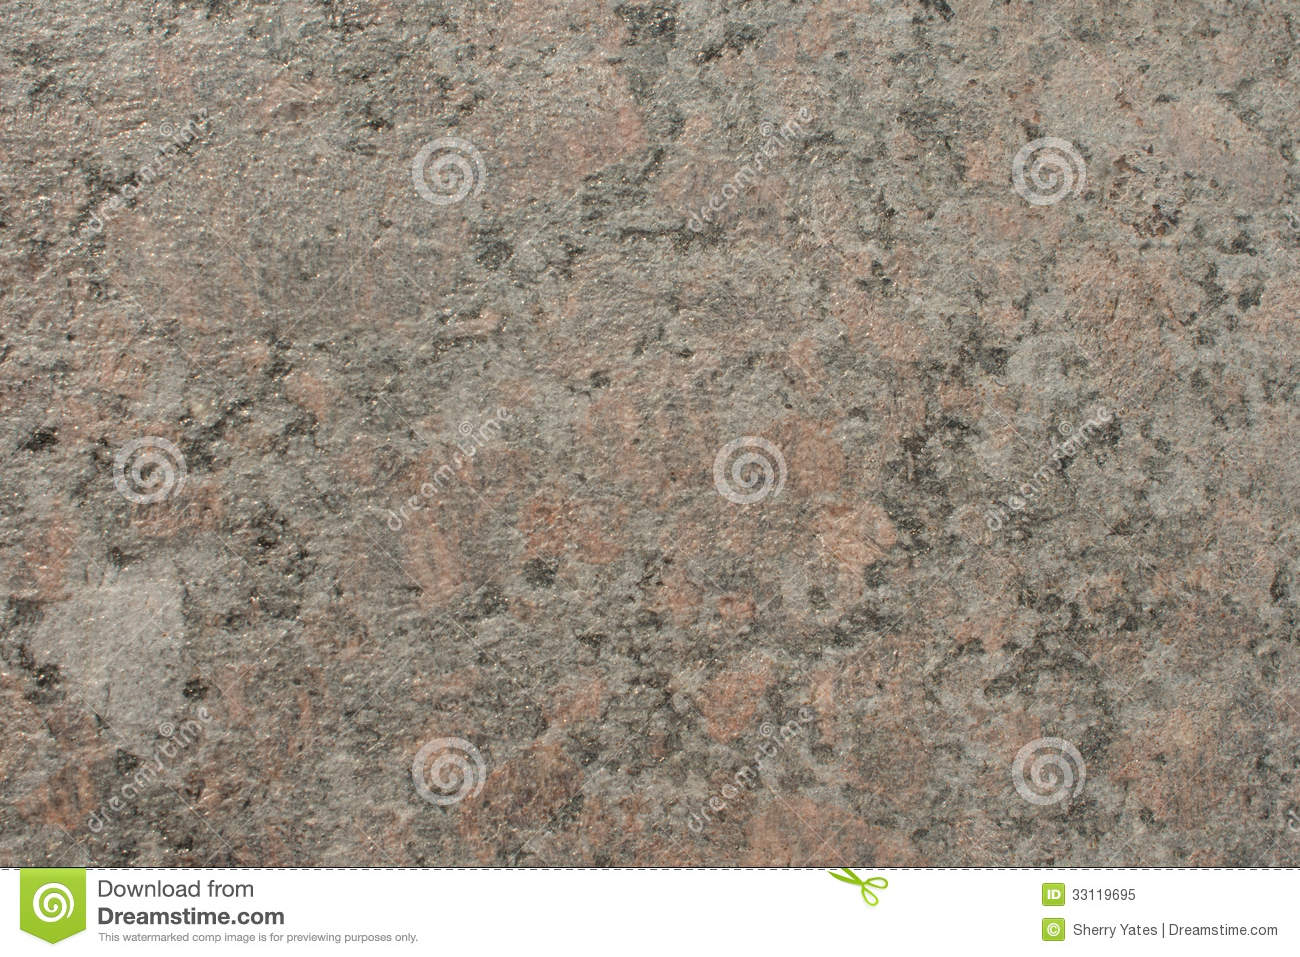 Pink To Gray Granite : Pink and gray granite royalty free stock photo image